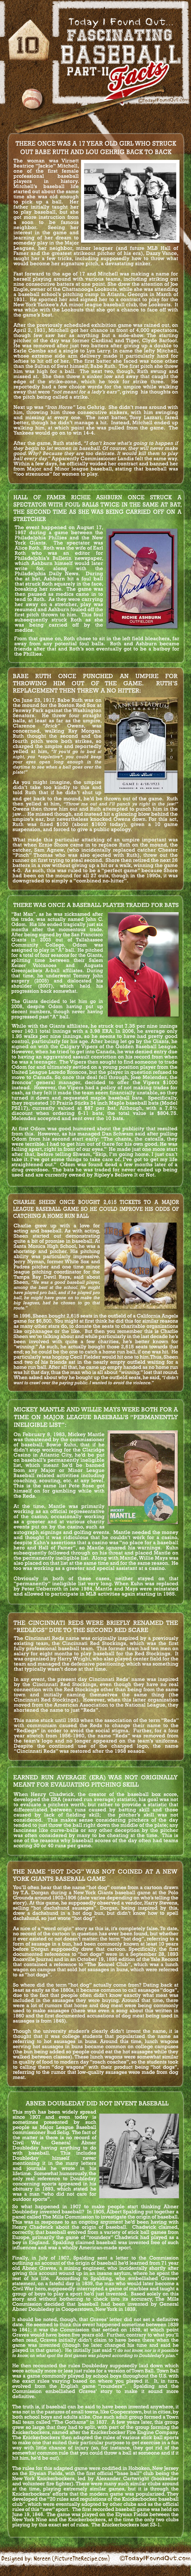 10 Fascinating Baseball Facts Part 2